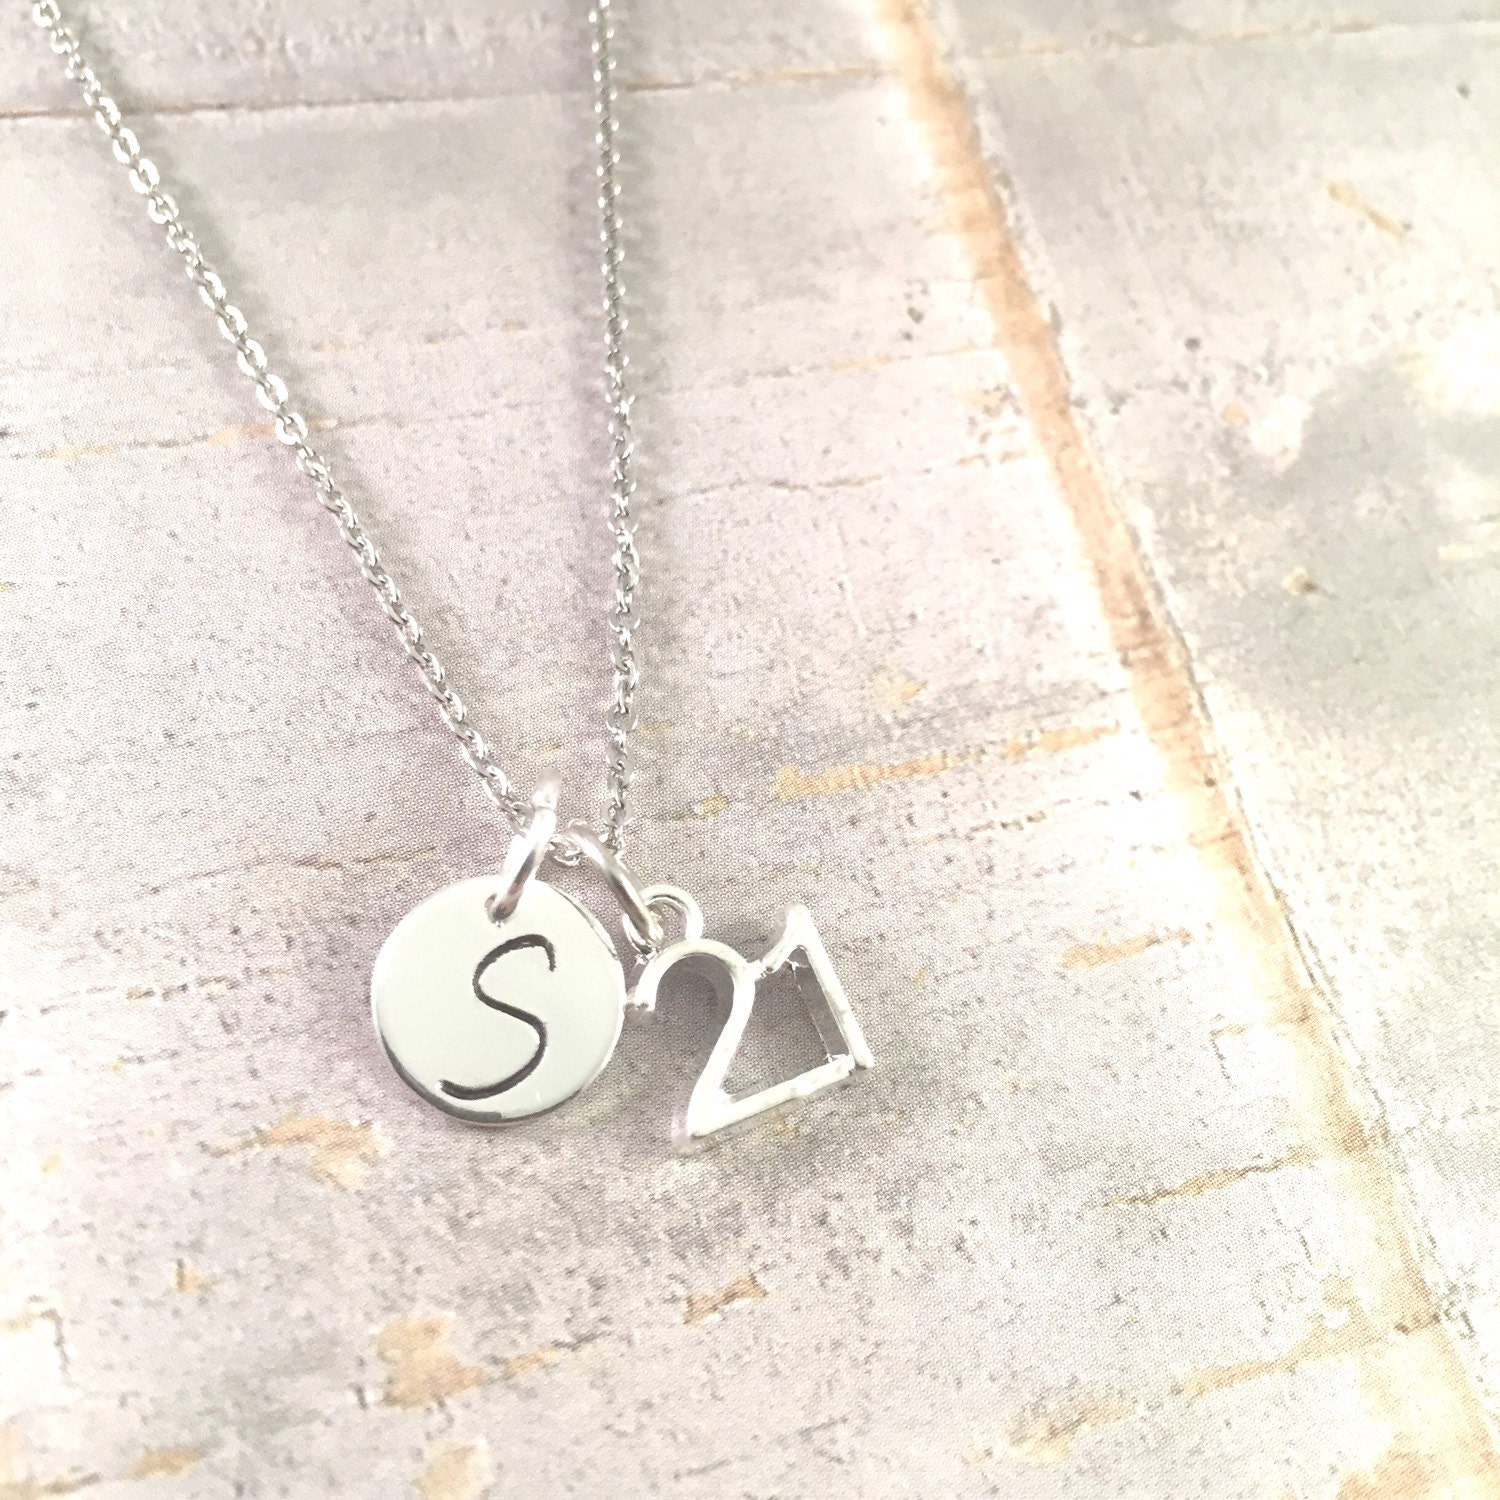 21st Birthday Necklace 21 Charm Necklace 21 Pendant 21st